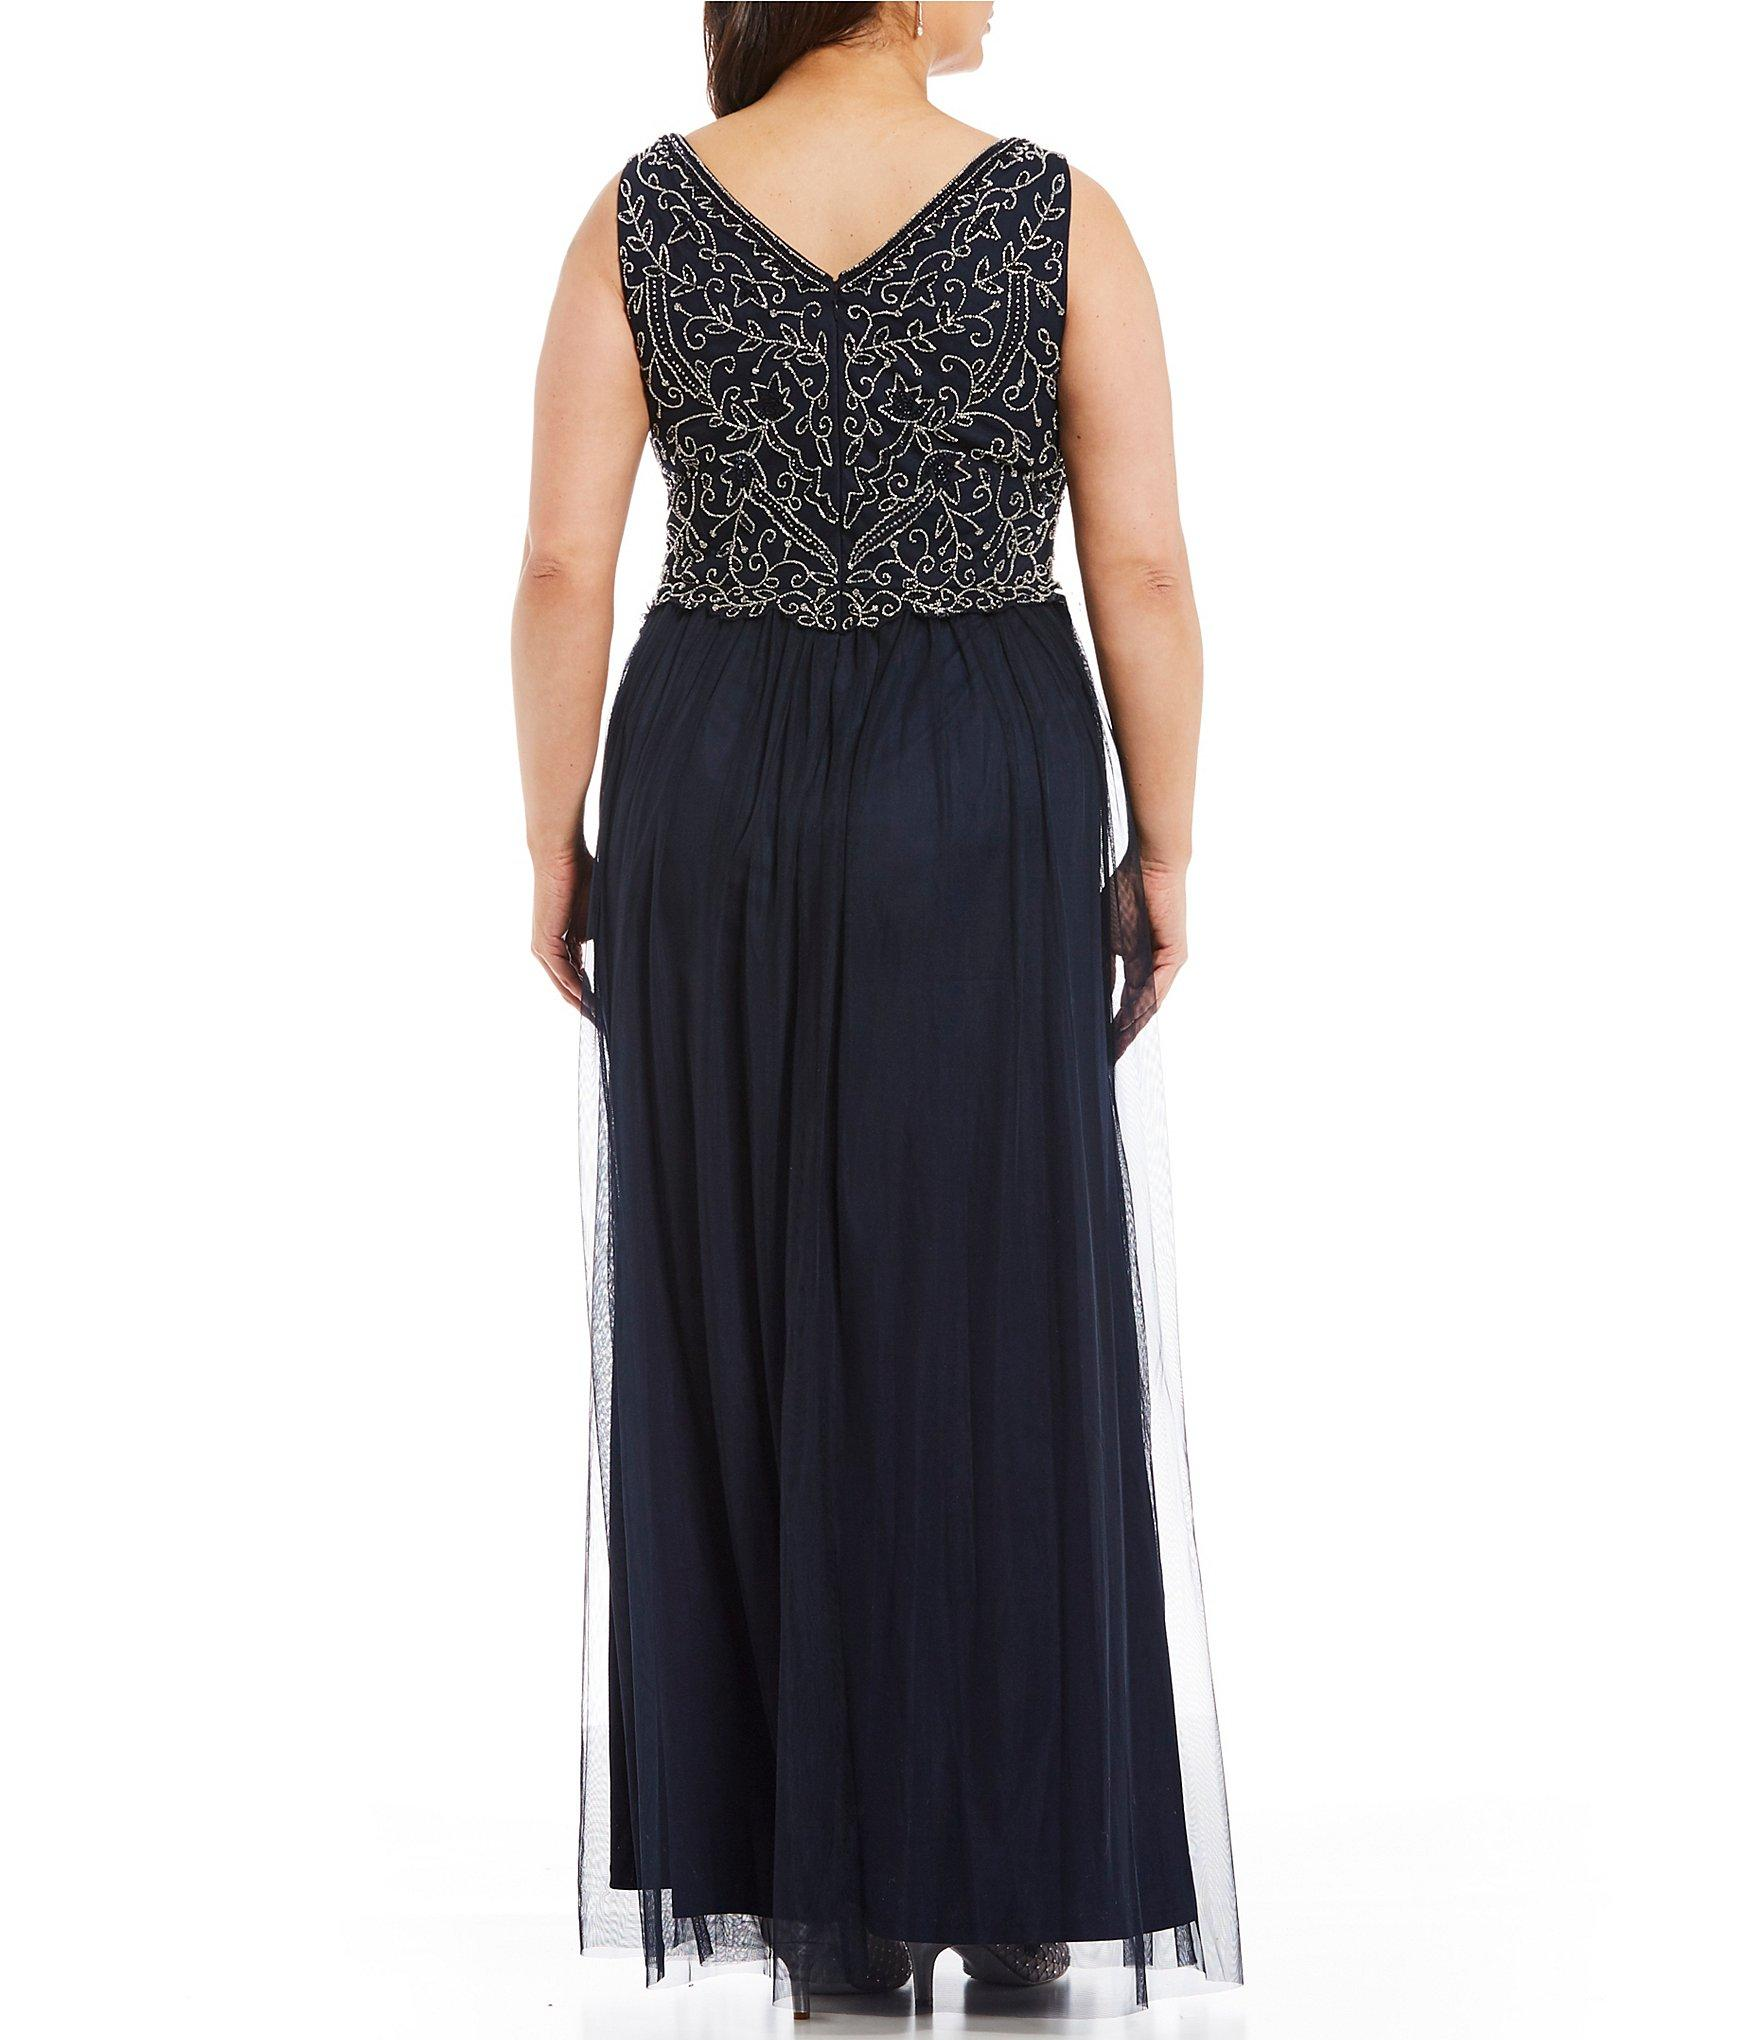 89dde798a1898 Adrianna Papell - Blue Plus Size Sleeveless Beaded V-neck Long Gown - Lyst.  View fullscreen